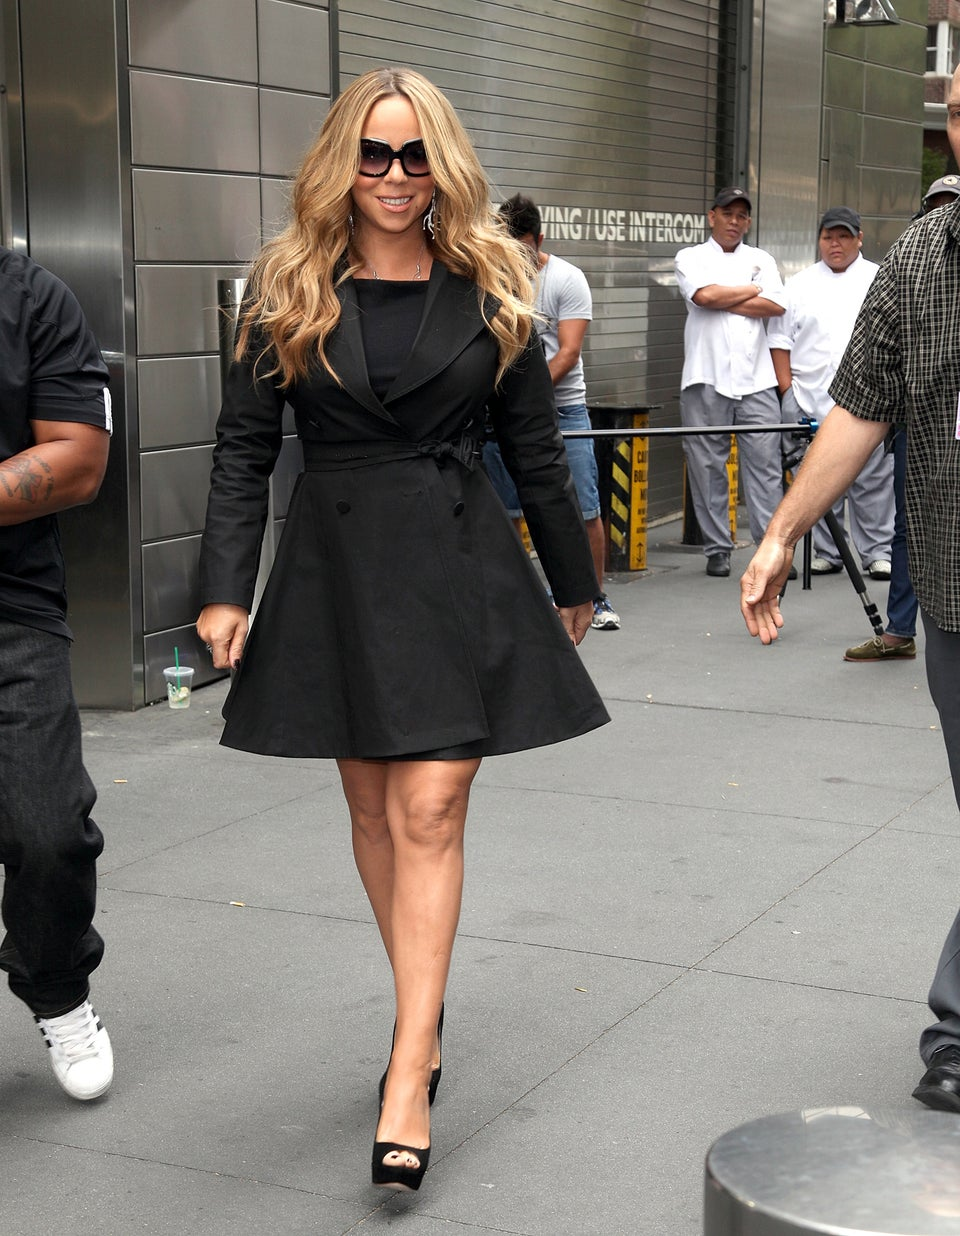 Mariah Carey Describes Her Judging Style as Honest and Constructive